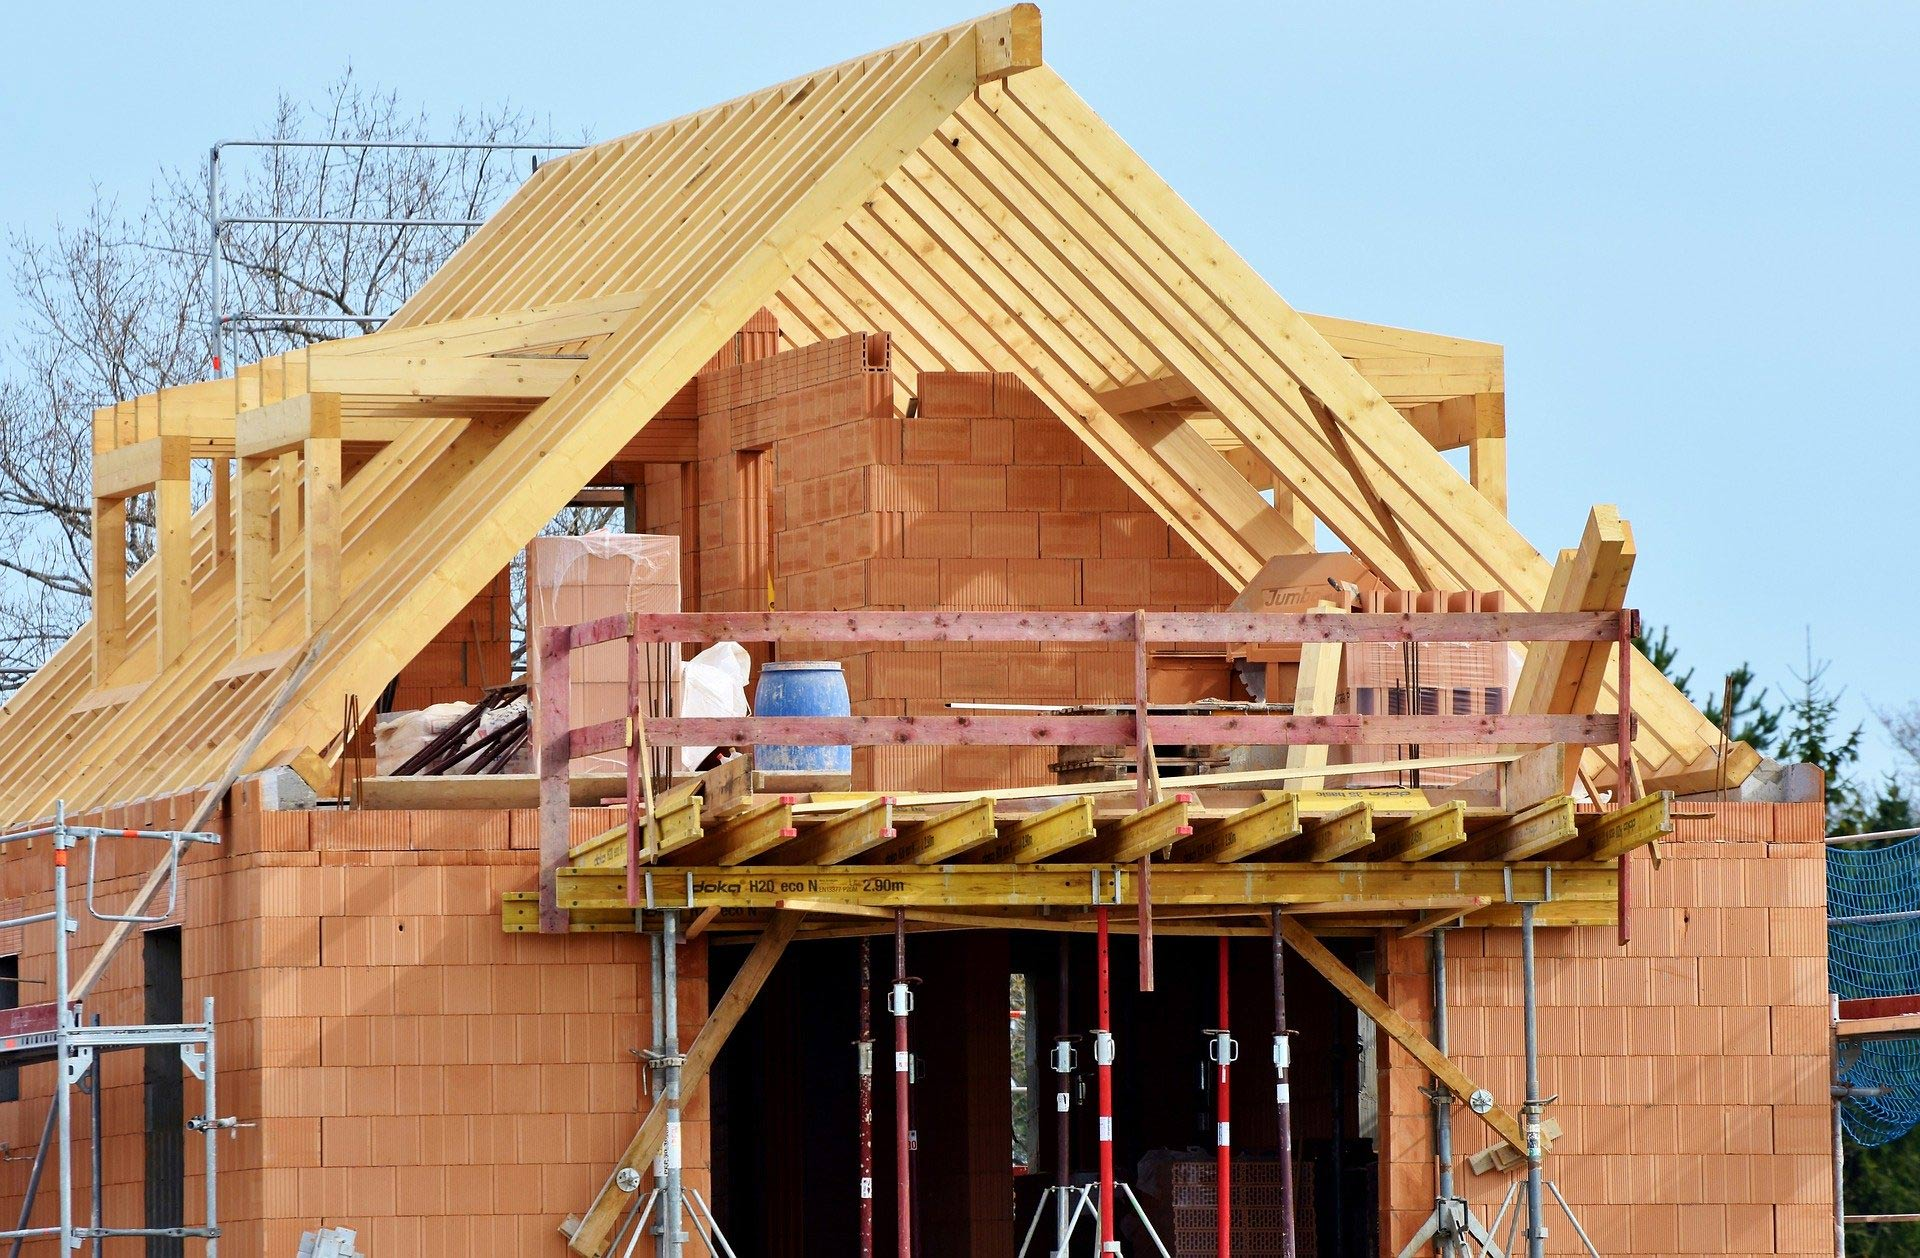 How Much Does It Cost To Build A House? - EA London